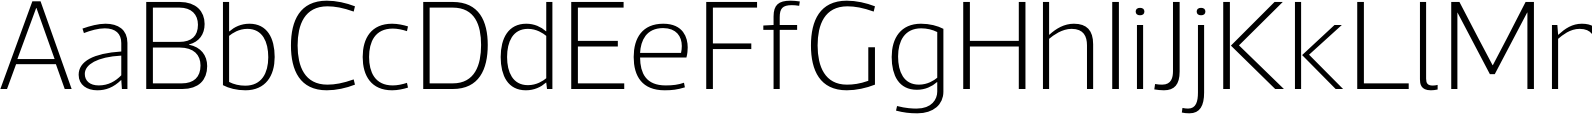 Acto UltraLight Font